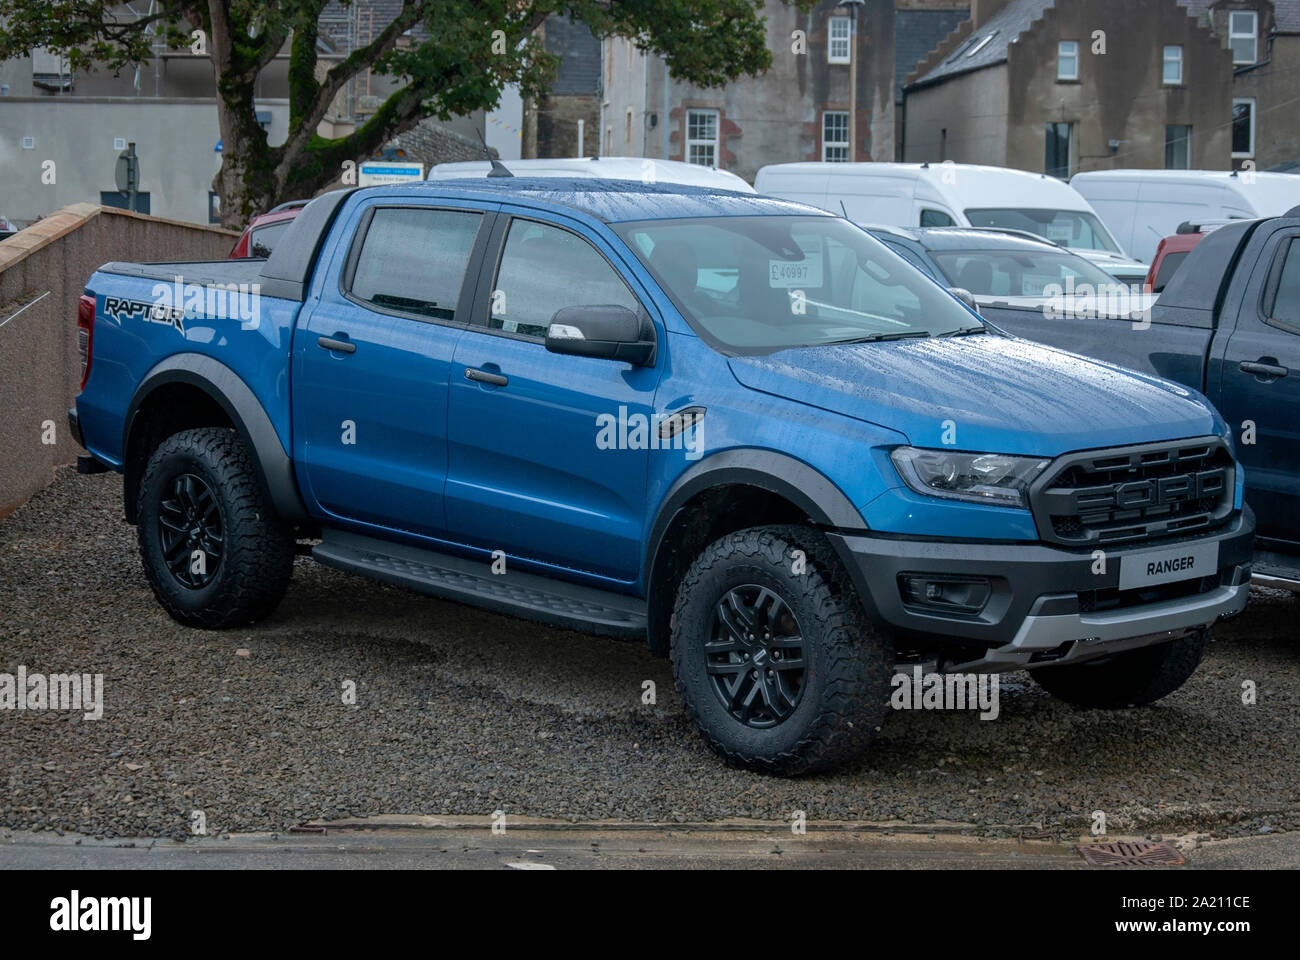 2019 Model Blue Ford Ranger Raptor Super Pick Up Truck W R Tulloch Castle Street Kirkwall Mainland The Orkney Isles Scotland United Kingdom Front Dri Stock Photo Alamy